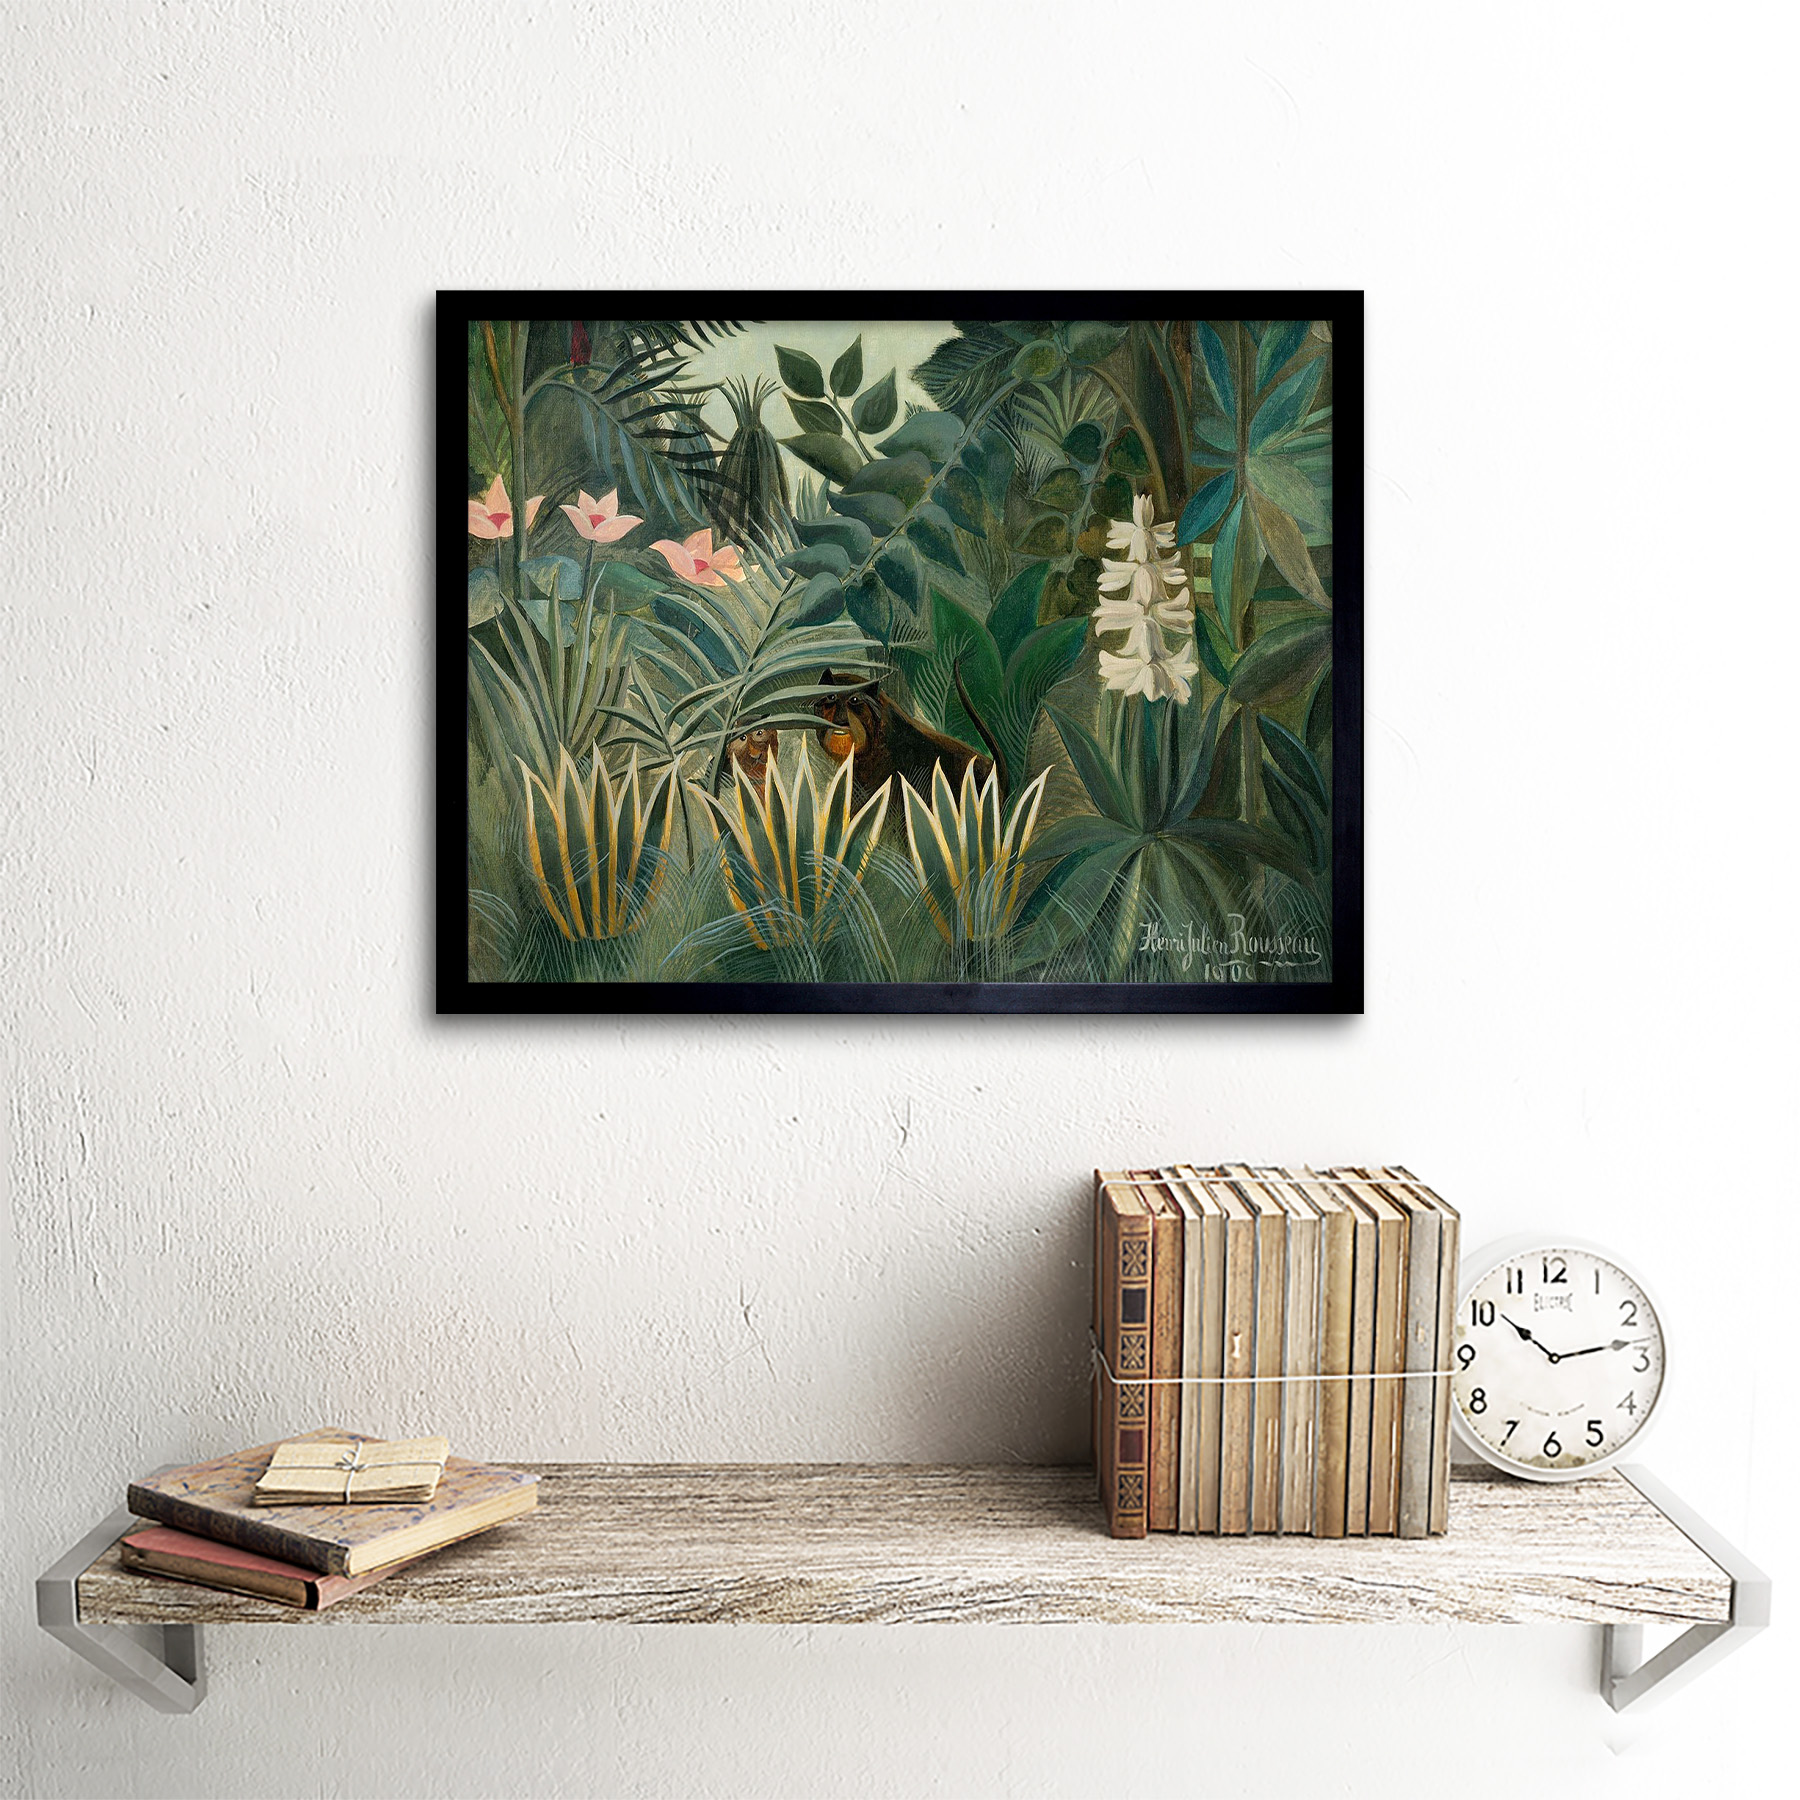 PAINTING JUNGLE HENRI ROUSSEAU IL SOGNO LARGE WALL ART PRINT POSTER LF2143